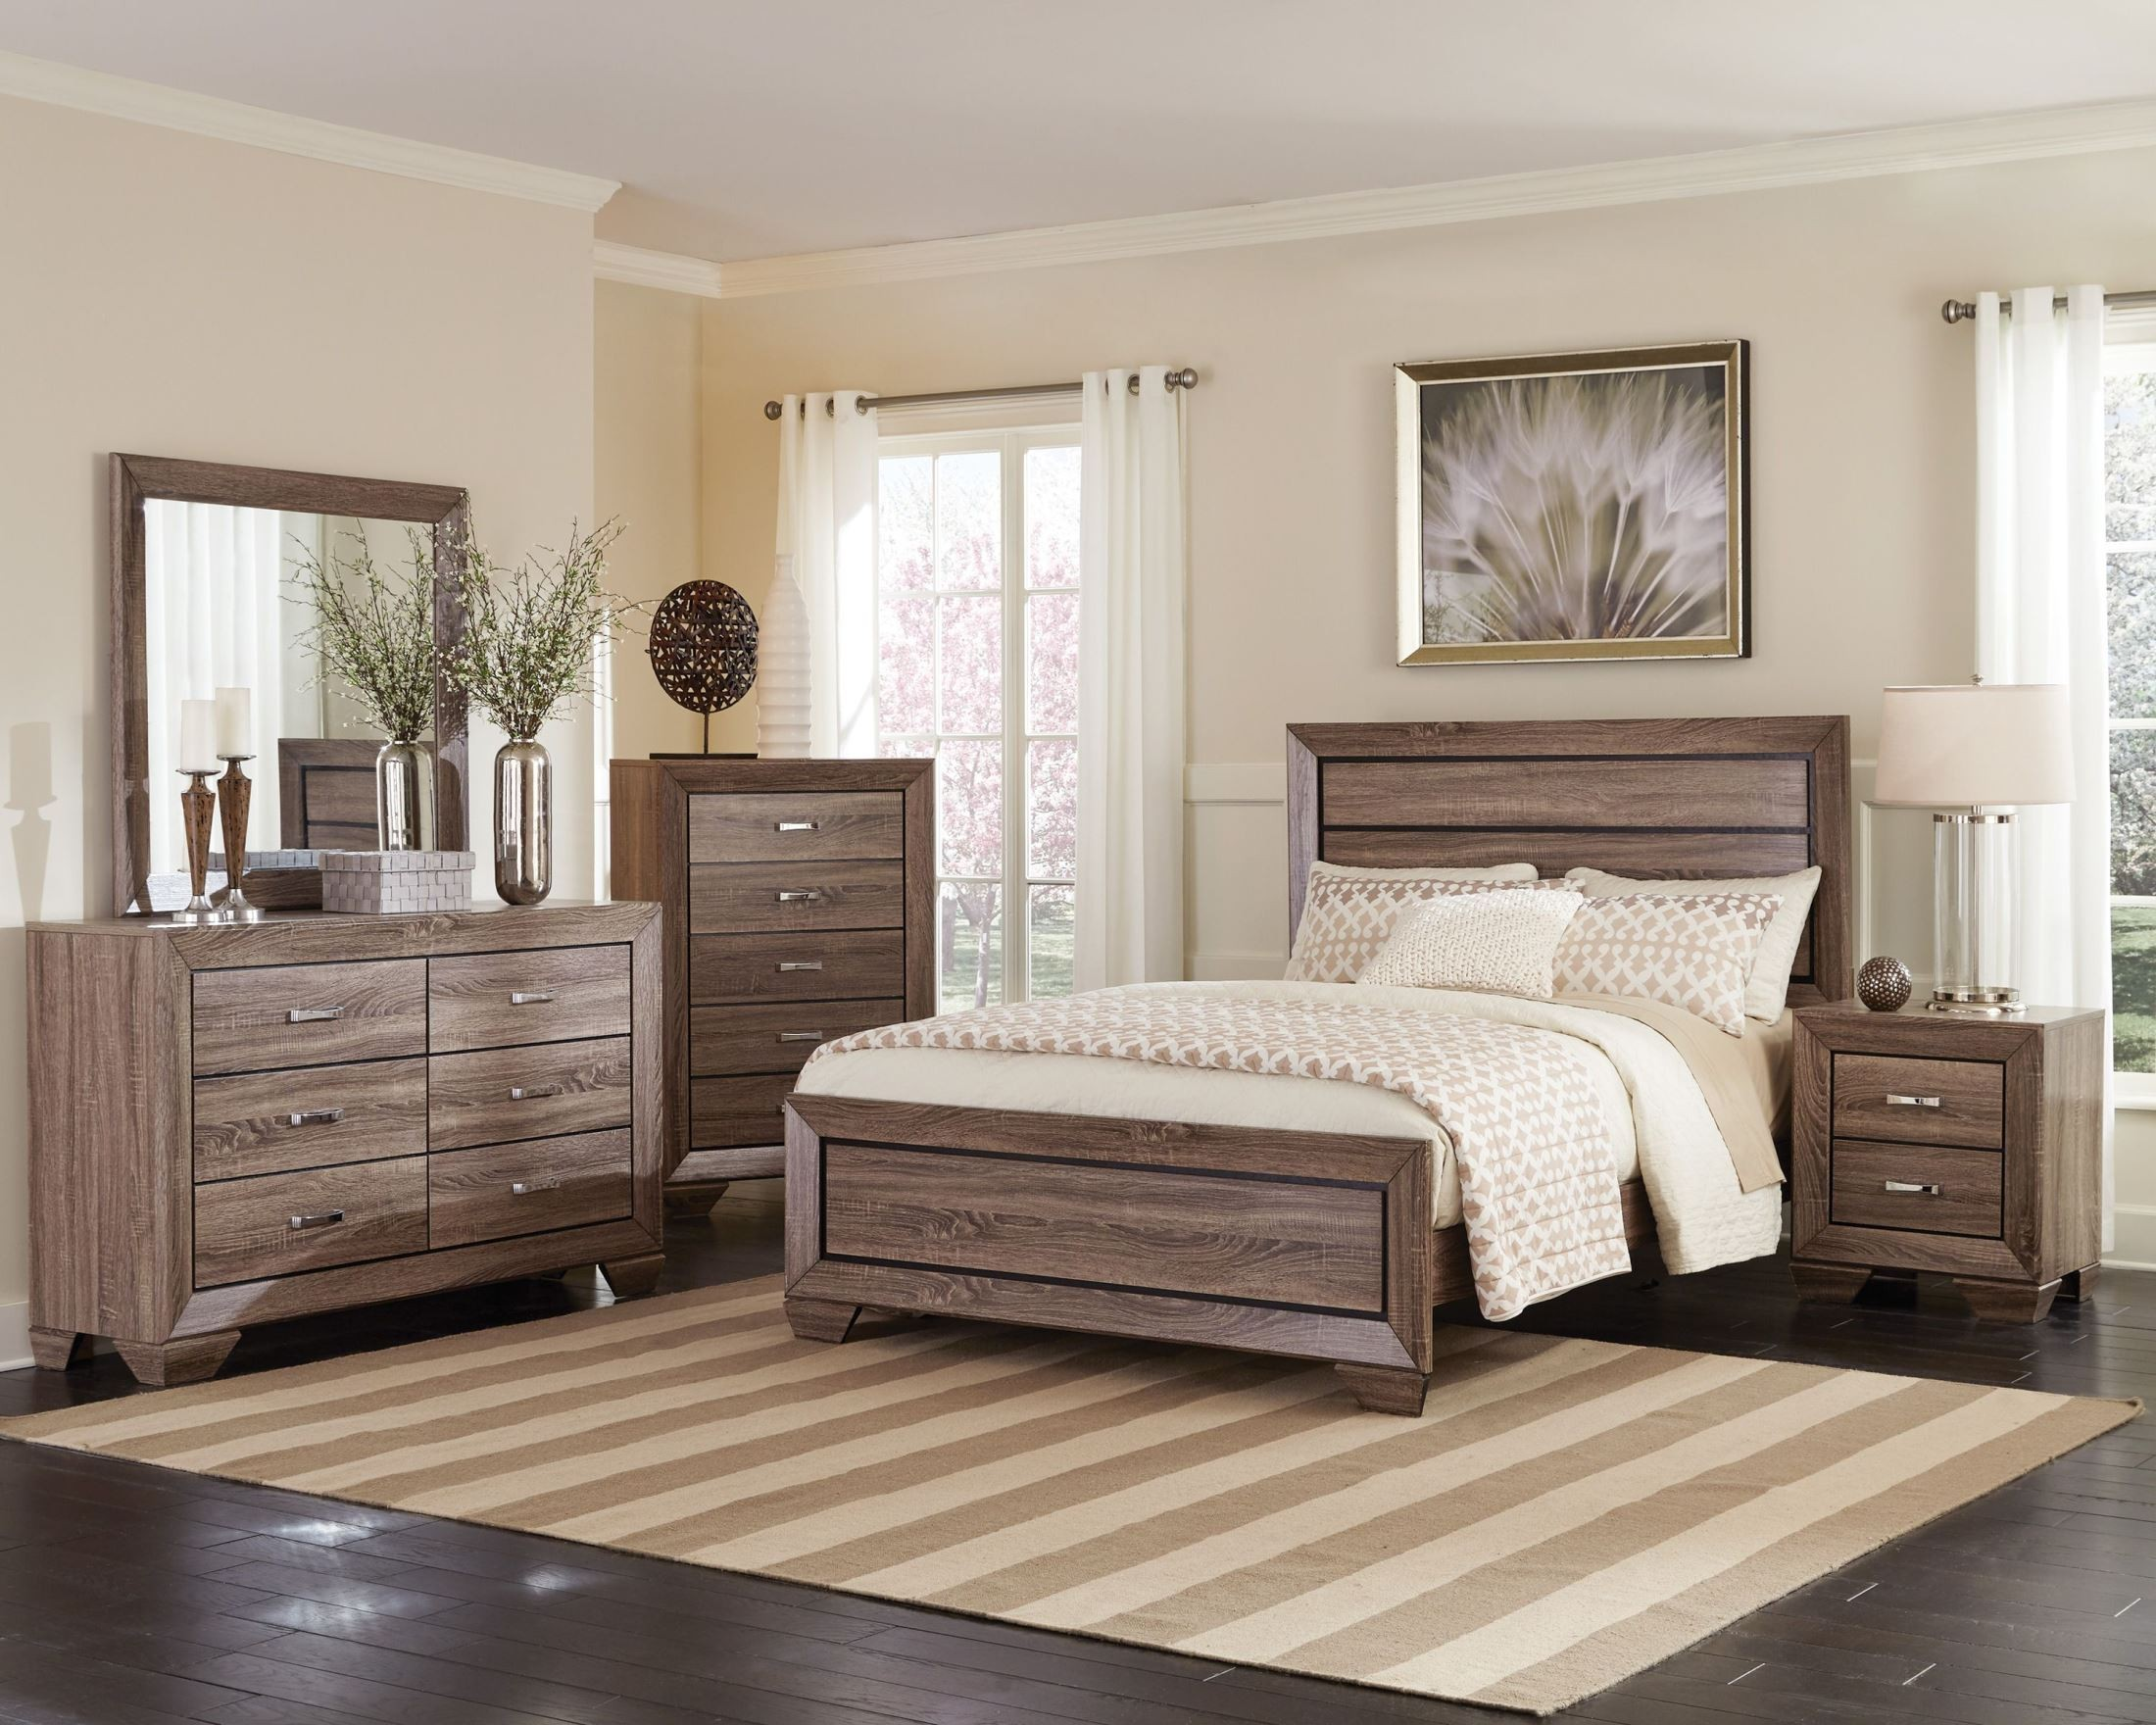 Kauffman Washed Taupe Panel Bedroom Set From Coaster 204191Q Coleman Furn